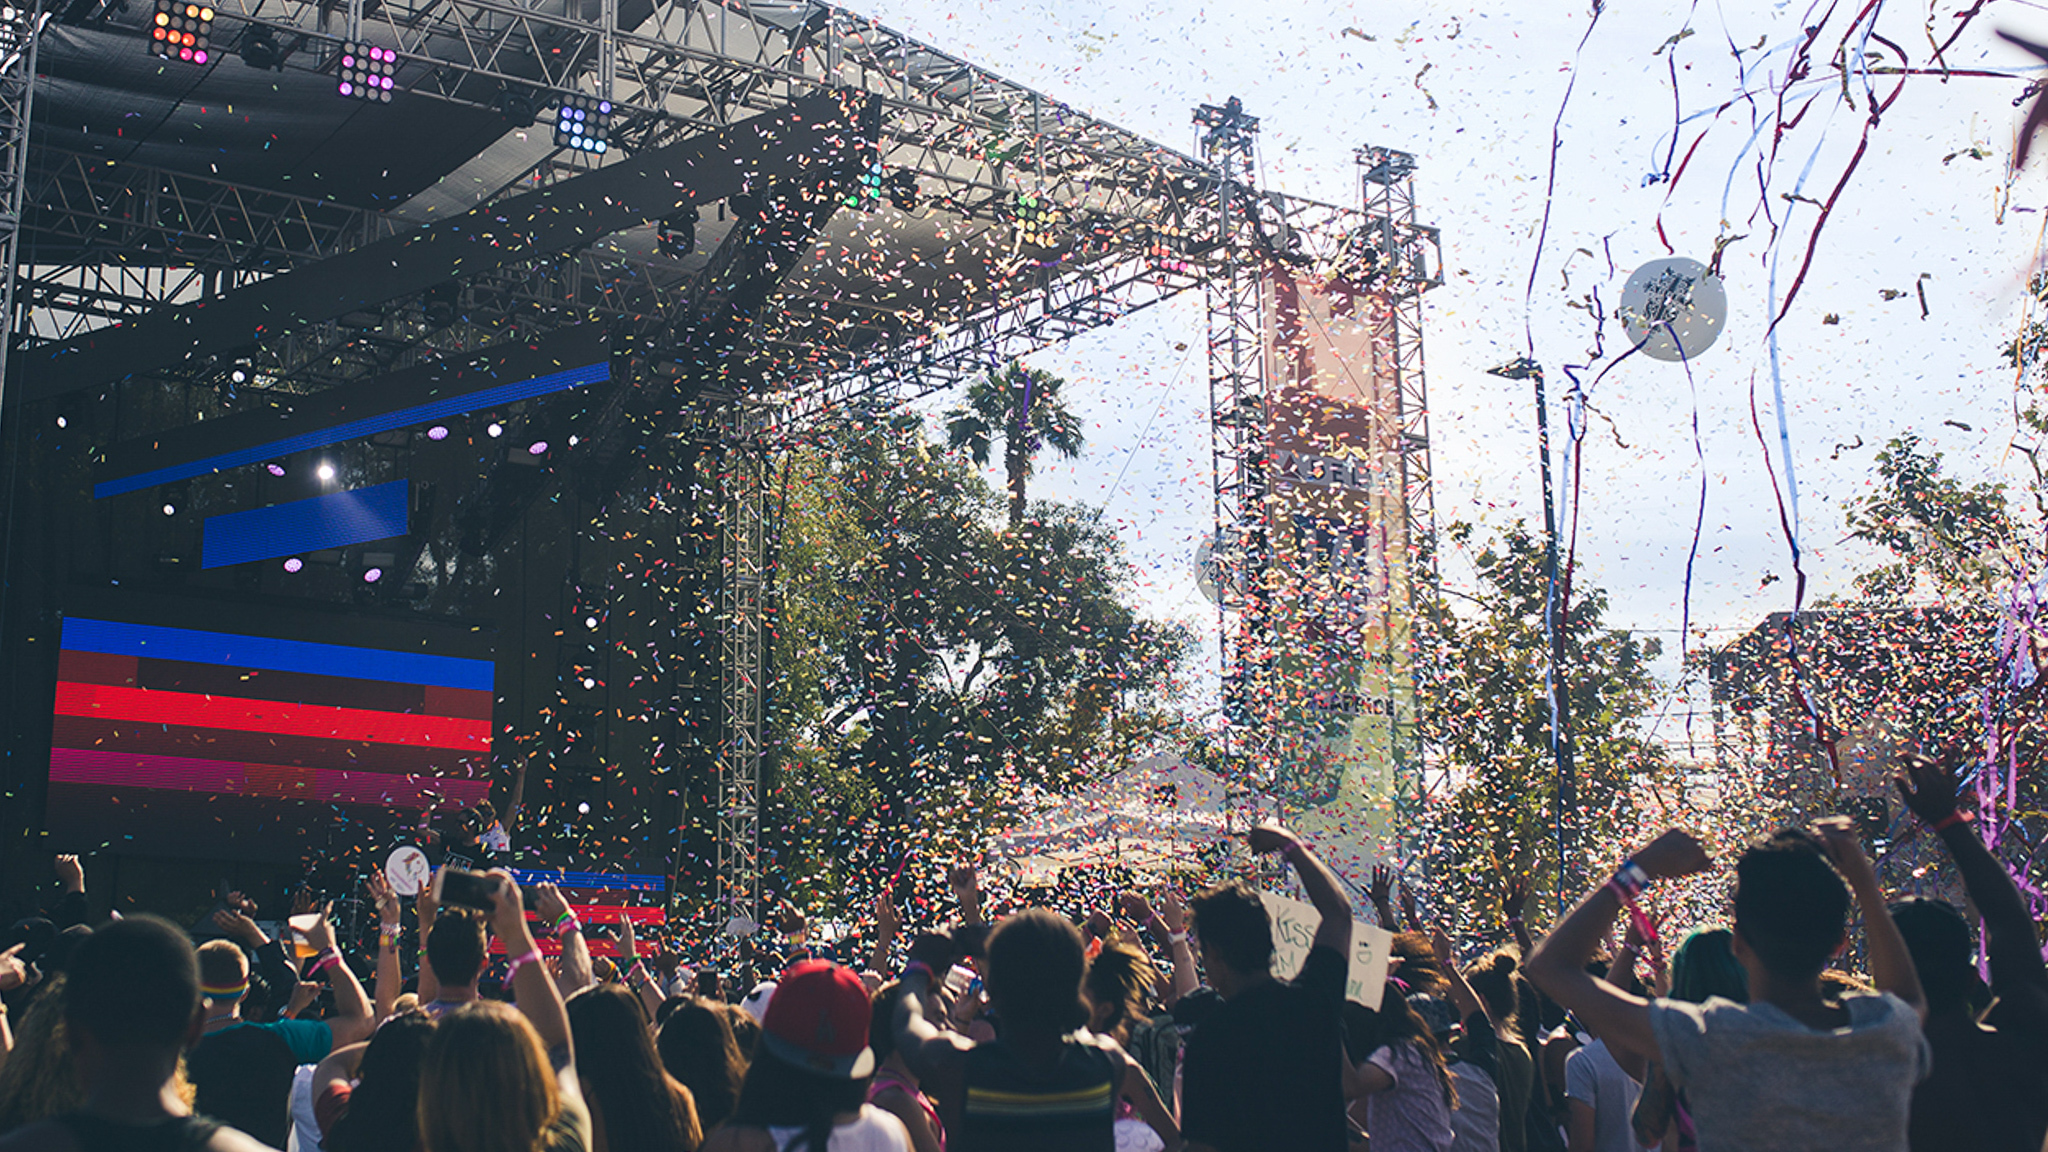 Events Happening In June 2020.June 2020 Events Calendar For Los Angeles